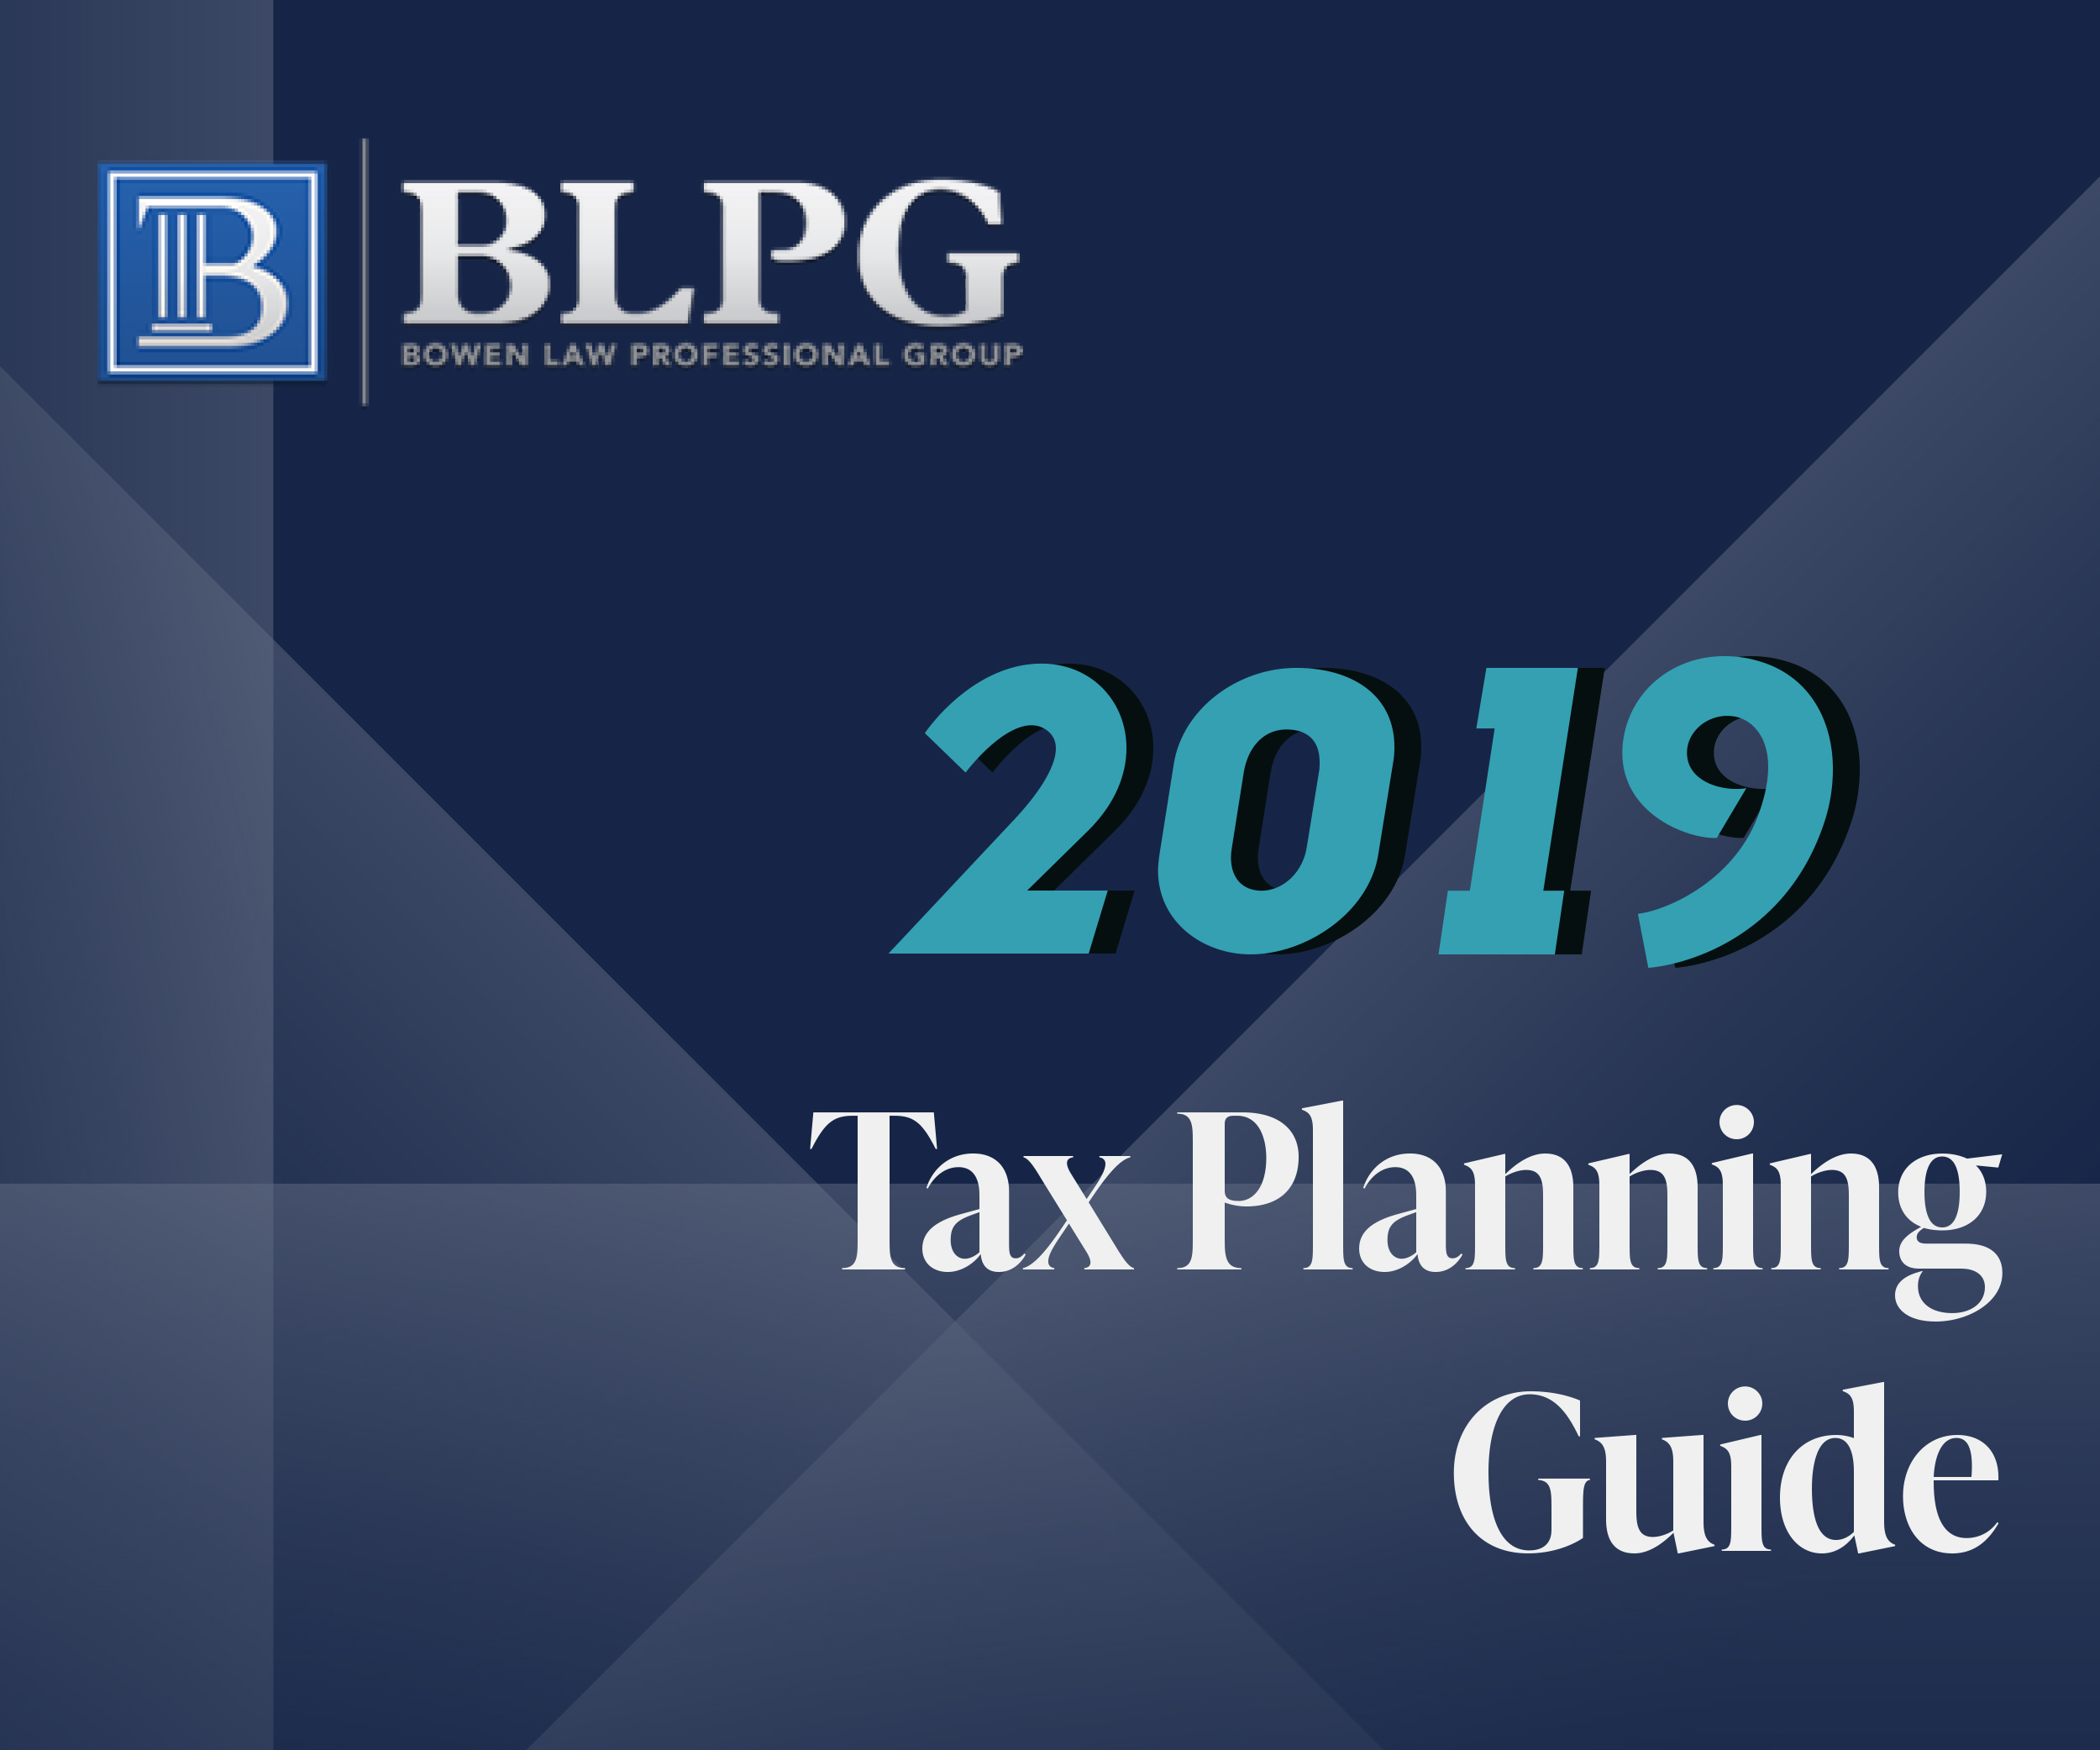 Tax Planning Guide 2019